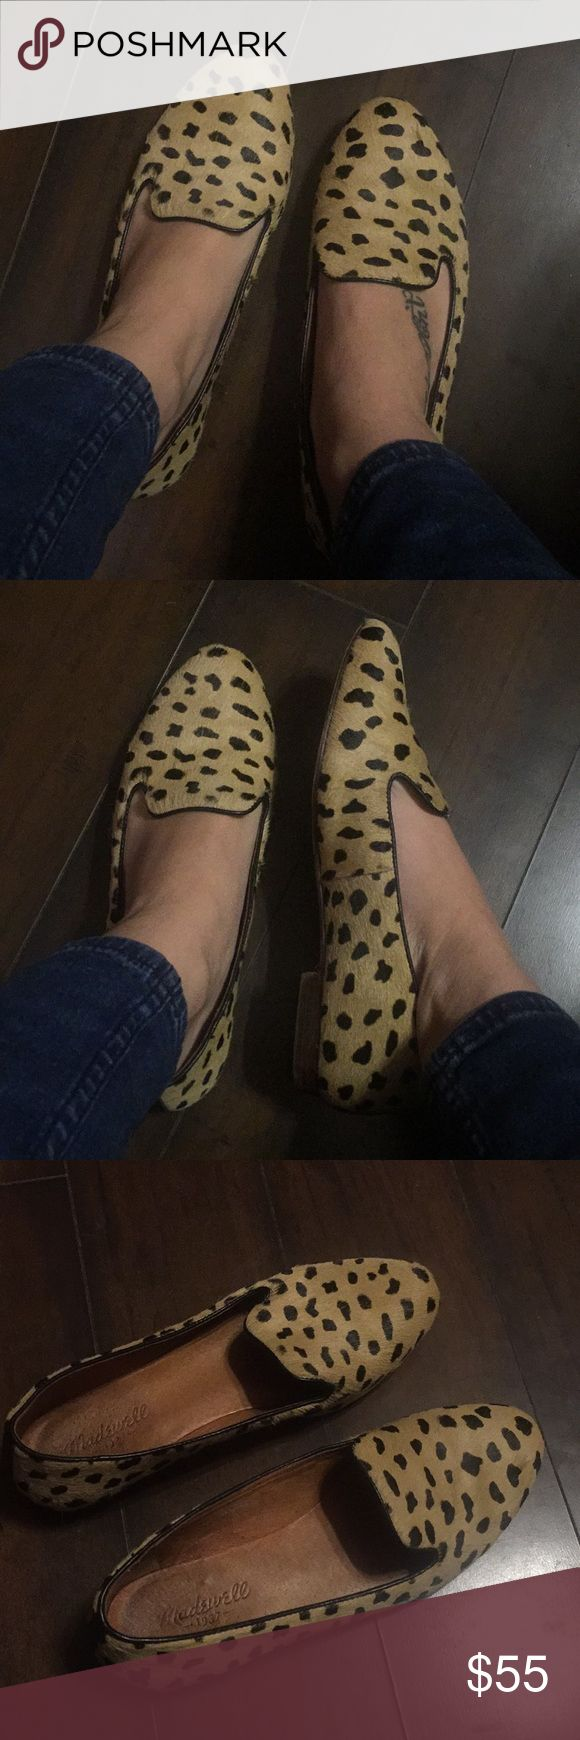 Madewell cheetah pony hair flat loafers 8 Madewell pony hair cheetah animal print ballet slip on loafers / flats.  Great used condition.  Lots of life left.  No bald spots.  Run large. Size 8. Can fit me perfectly and I'm a 9. Madewell Shoes Flats & Loafers